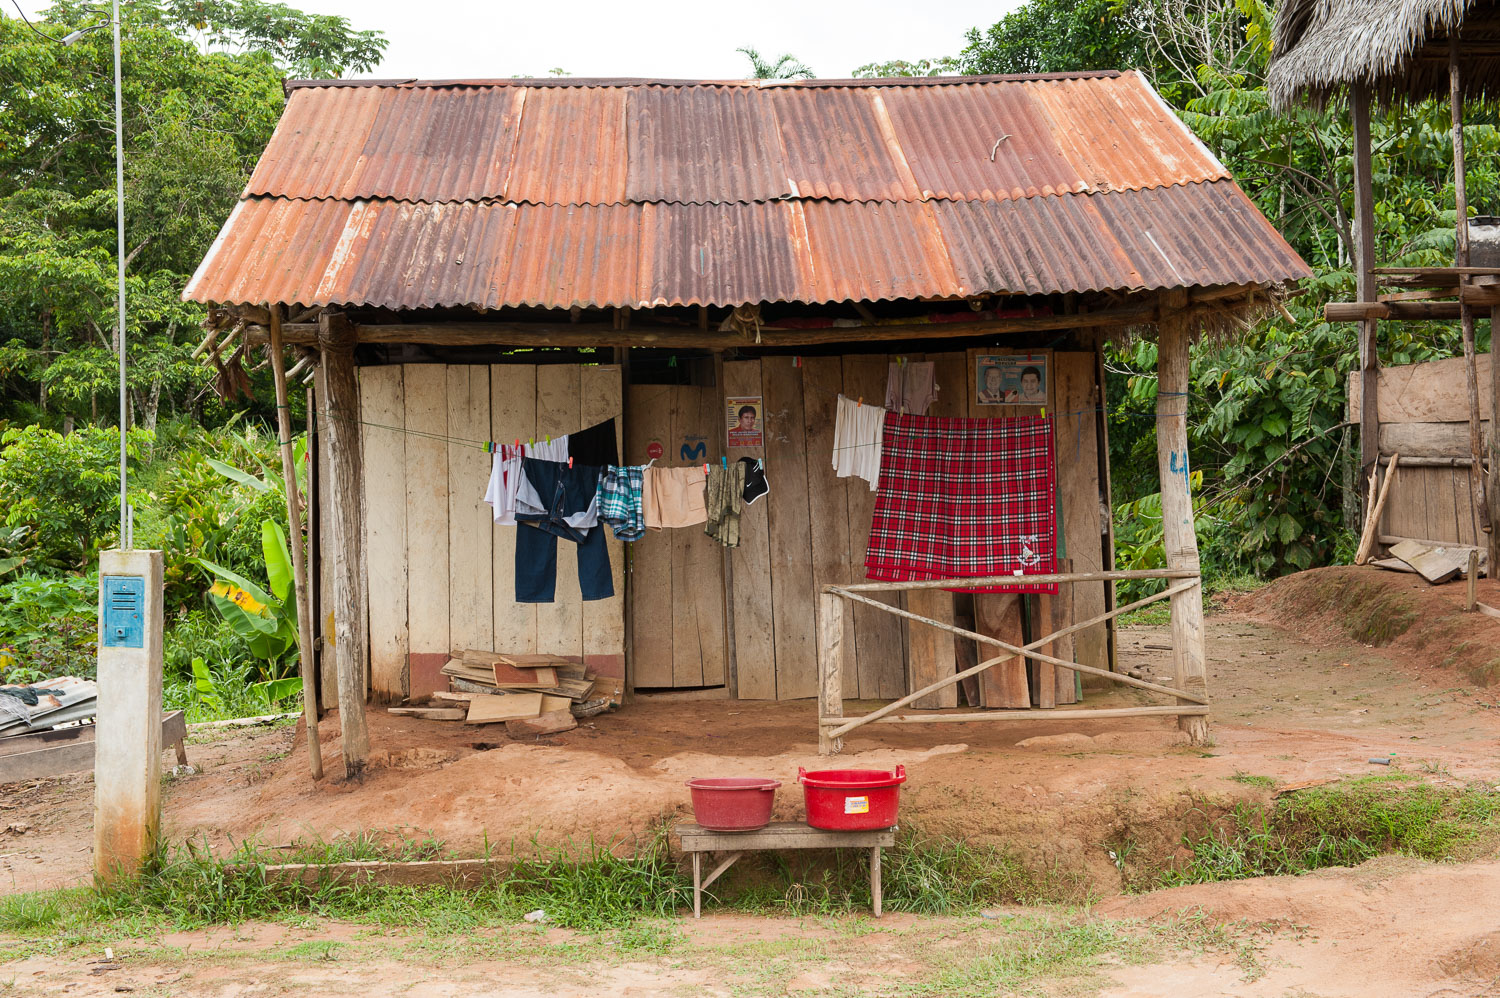 A typical home in the Amazonian village of Puerto Prado, Peru. More than 60% of the country's territory is covered by the Amazon rainforest, home to over 300,000 indigenous people who depend on it for their livelihoods. Although Peruvian law recognizes the rights of indigenous people to their land, it still foresees the possibility of granting concessions over these lands, if doing so is deemed in the national interest.